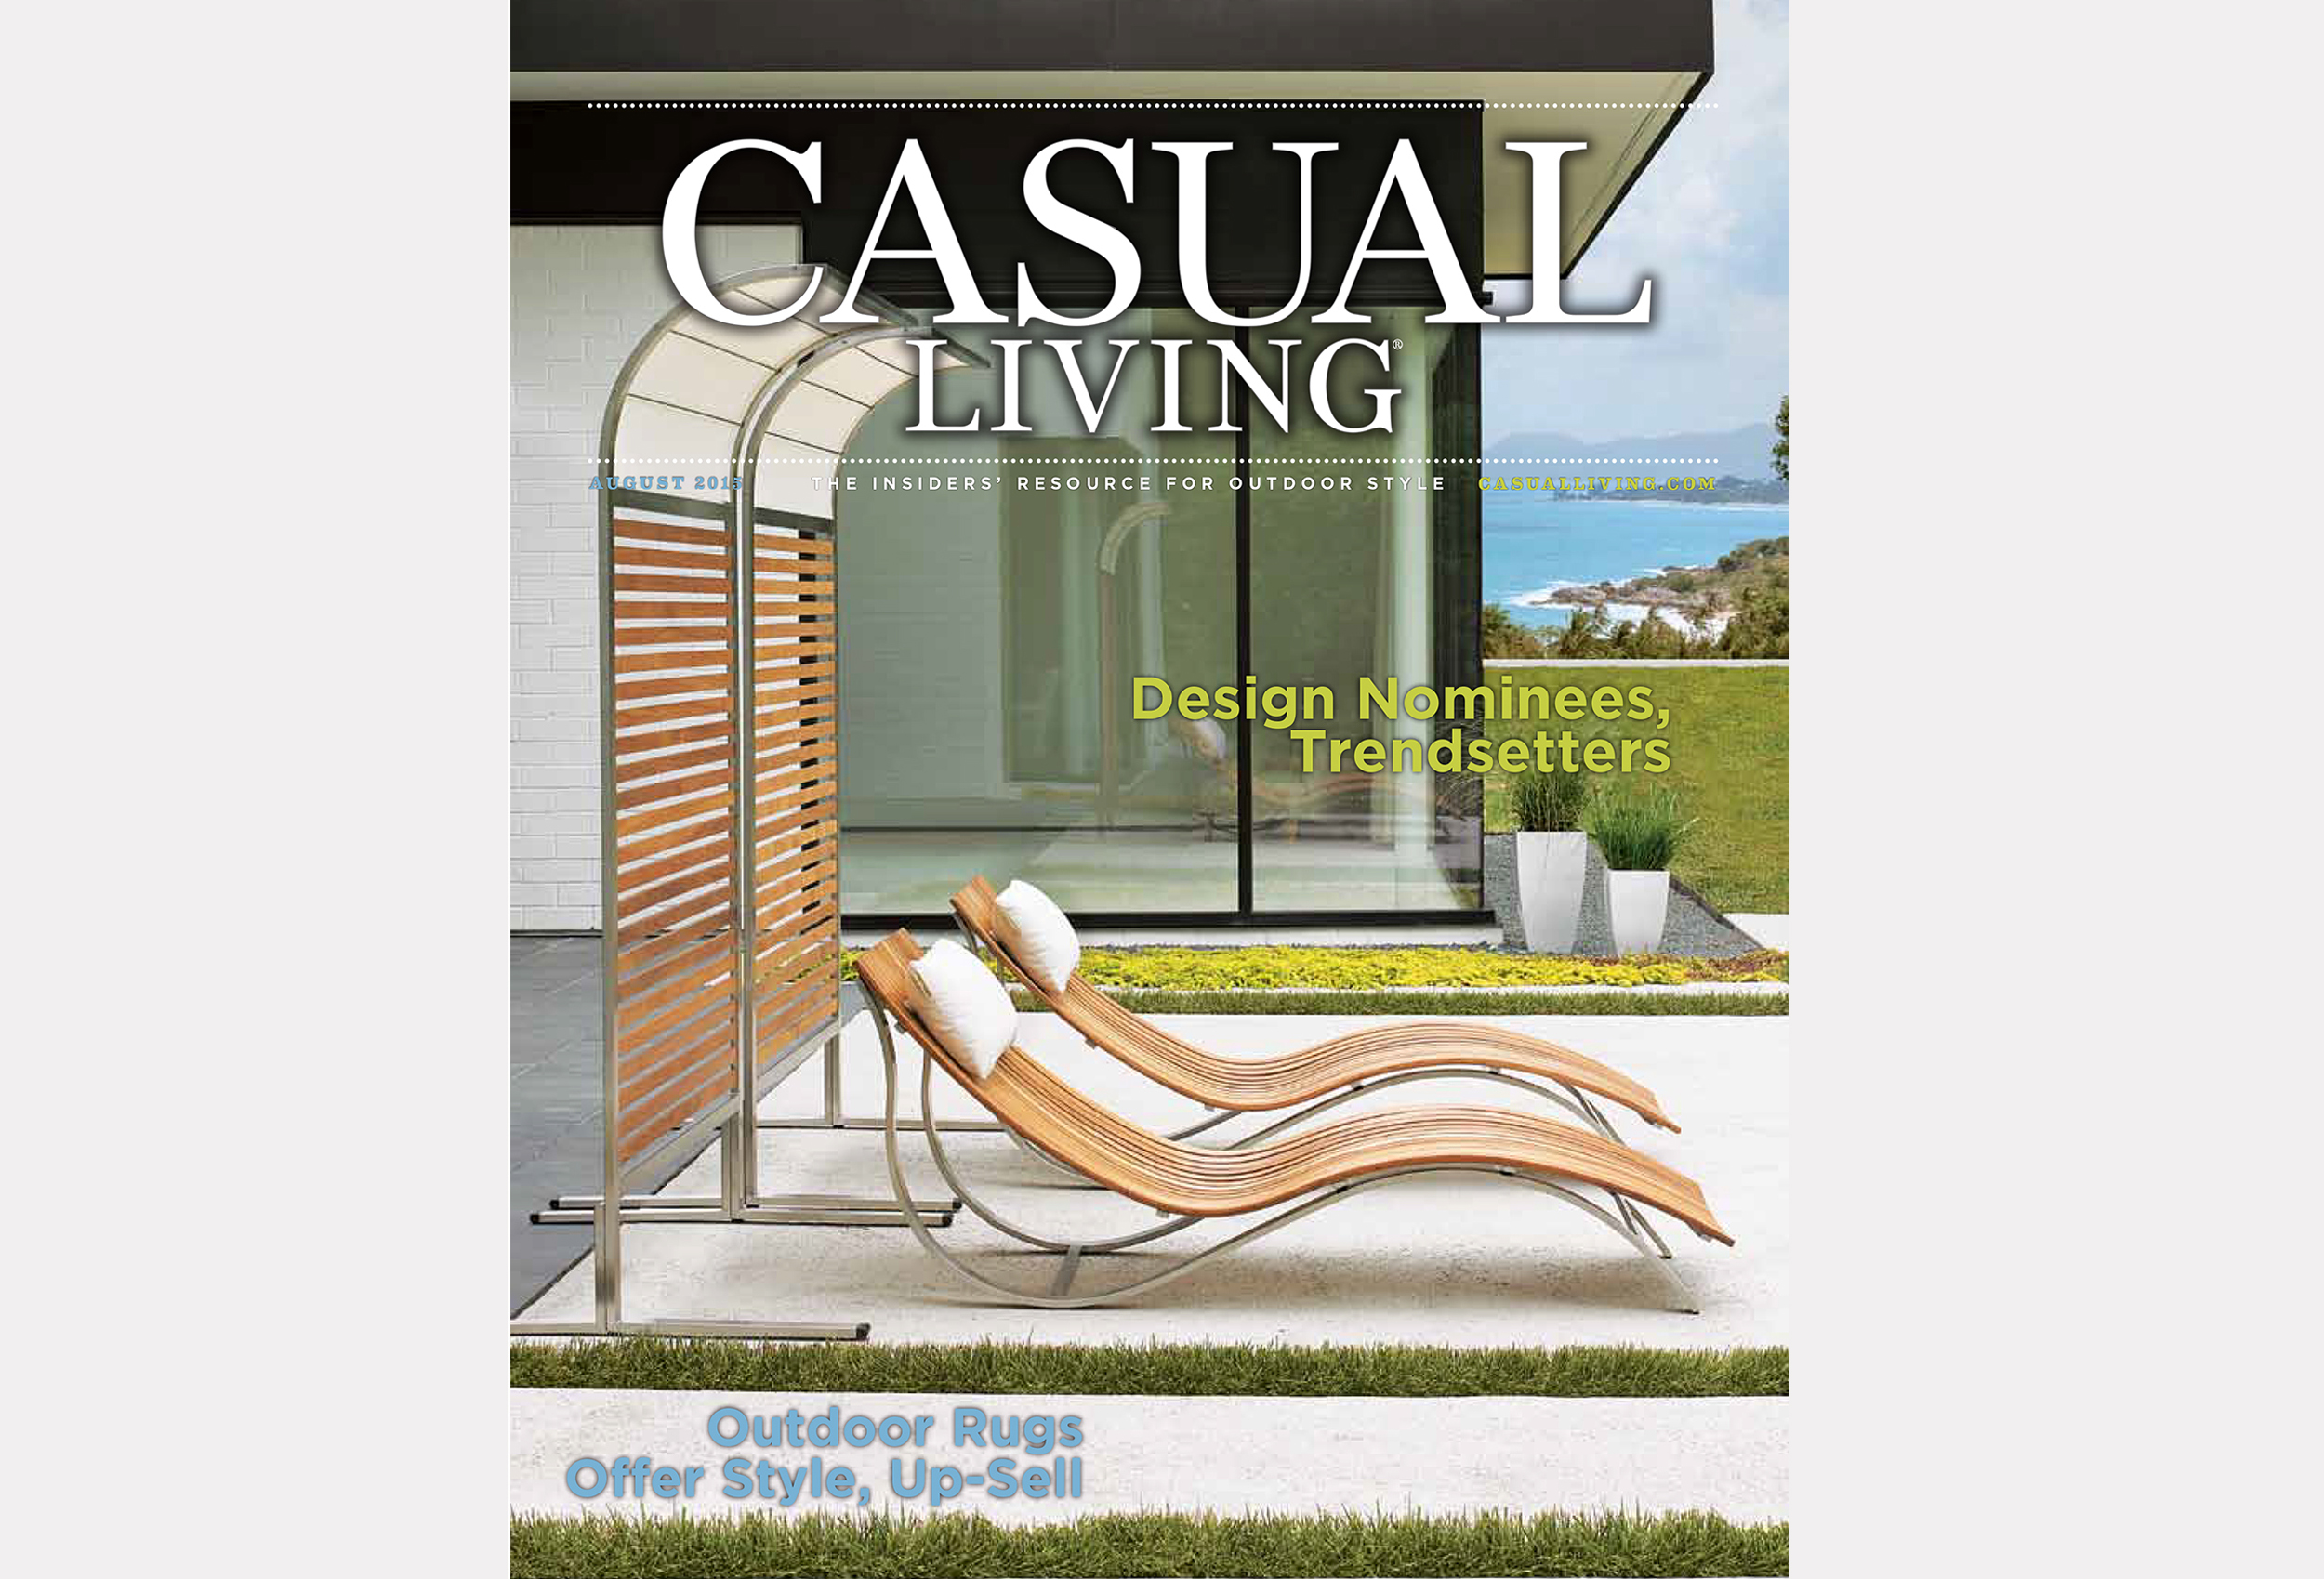 Casual Living Dist Channel Magazine -1a.jpg